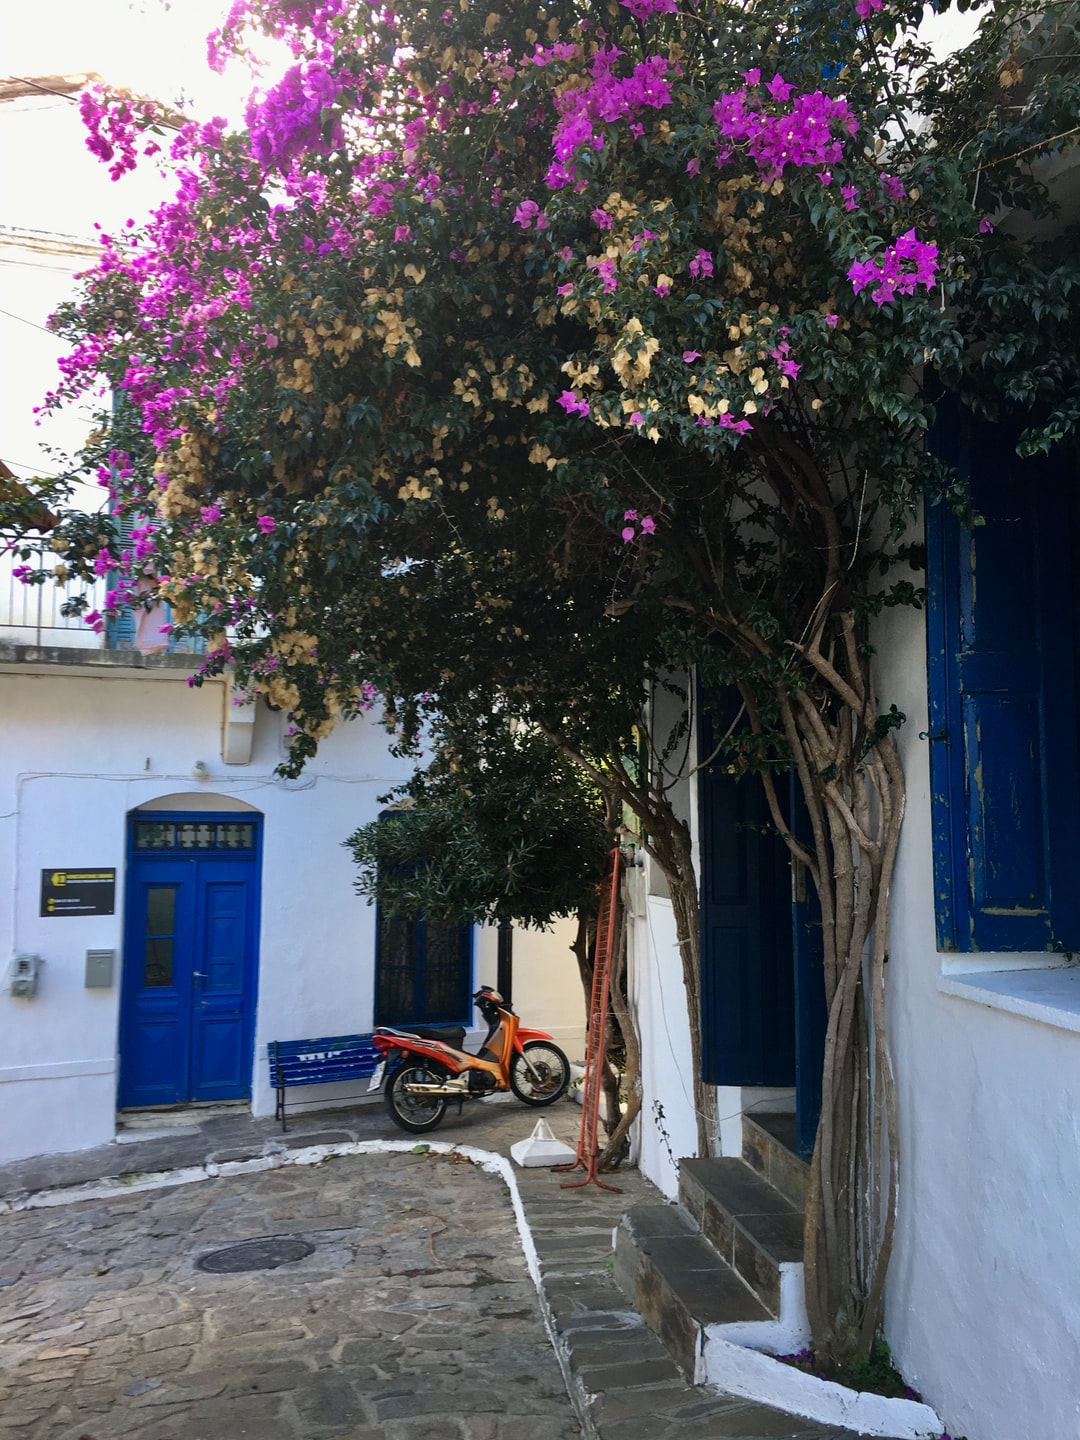 Ikaria, the island that extends life